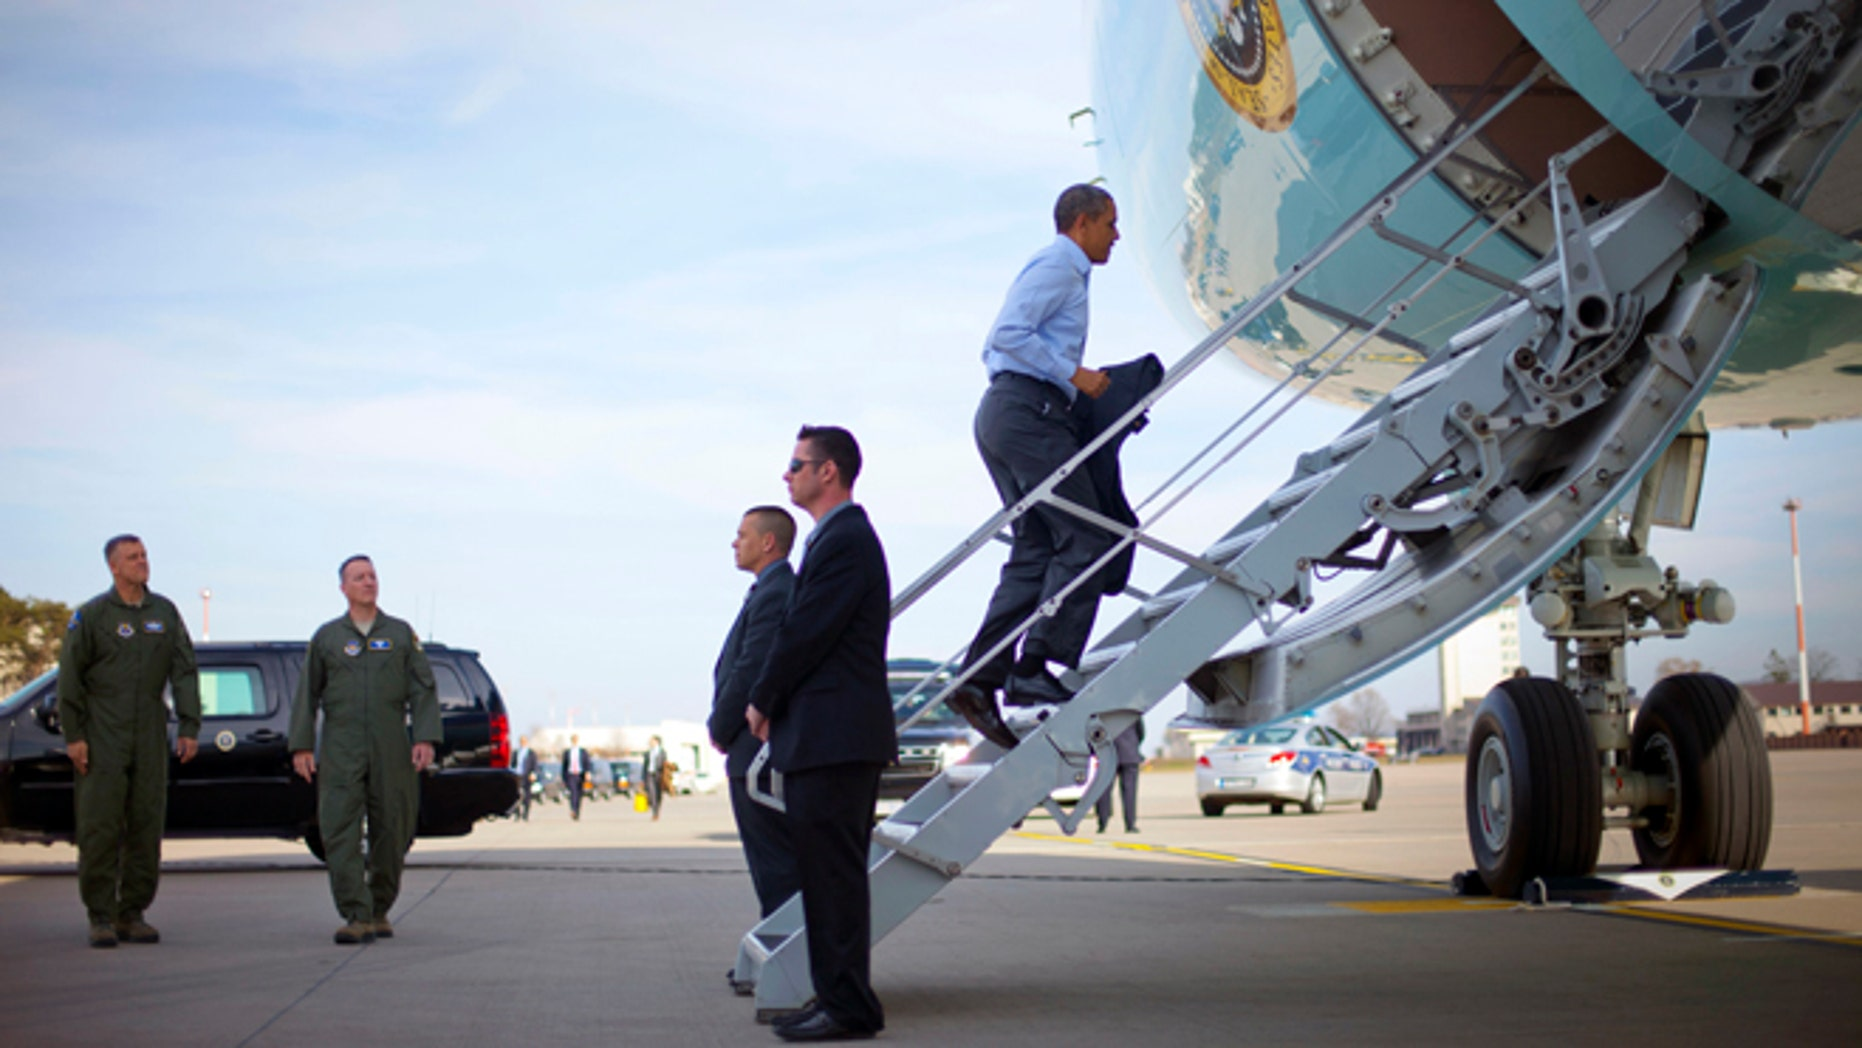 U.S. President Barack Obama boards Air Force One at Ramstein Air Base, Saturday, March 29, 2014, in Germany. Air Force One was making a scheduled refueling stop in Germany and he was using the opportunity to meet with US members of the military. Obama is returning back to Washington after a week long trip aboard to Europe and Saudi Arabia. (AP Photo/Pablo Martinez Monsivais)